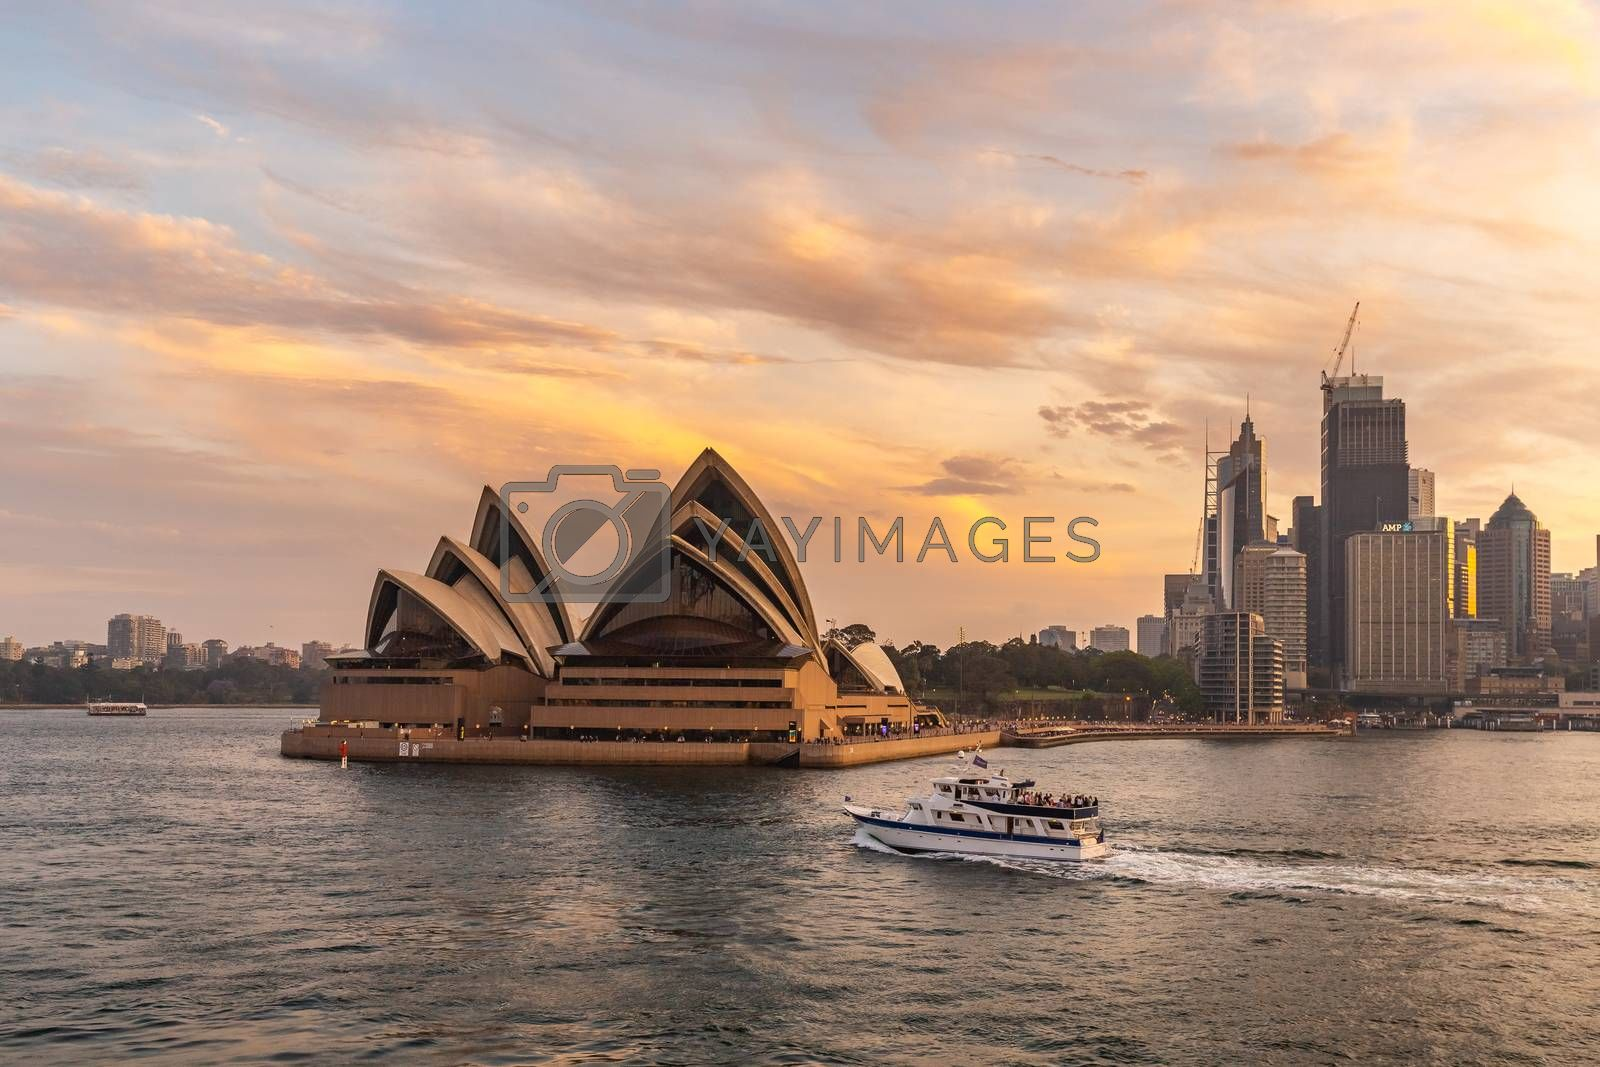 Sydney Harbor, Australia - November 1, 2018: Sydney Opera House at sunset. Beautiful orange-and-yellow colors. Down town and cloudy sky in the background. Tourist boat sailing the foreground.